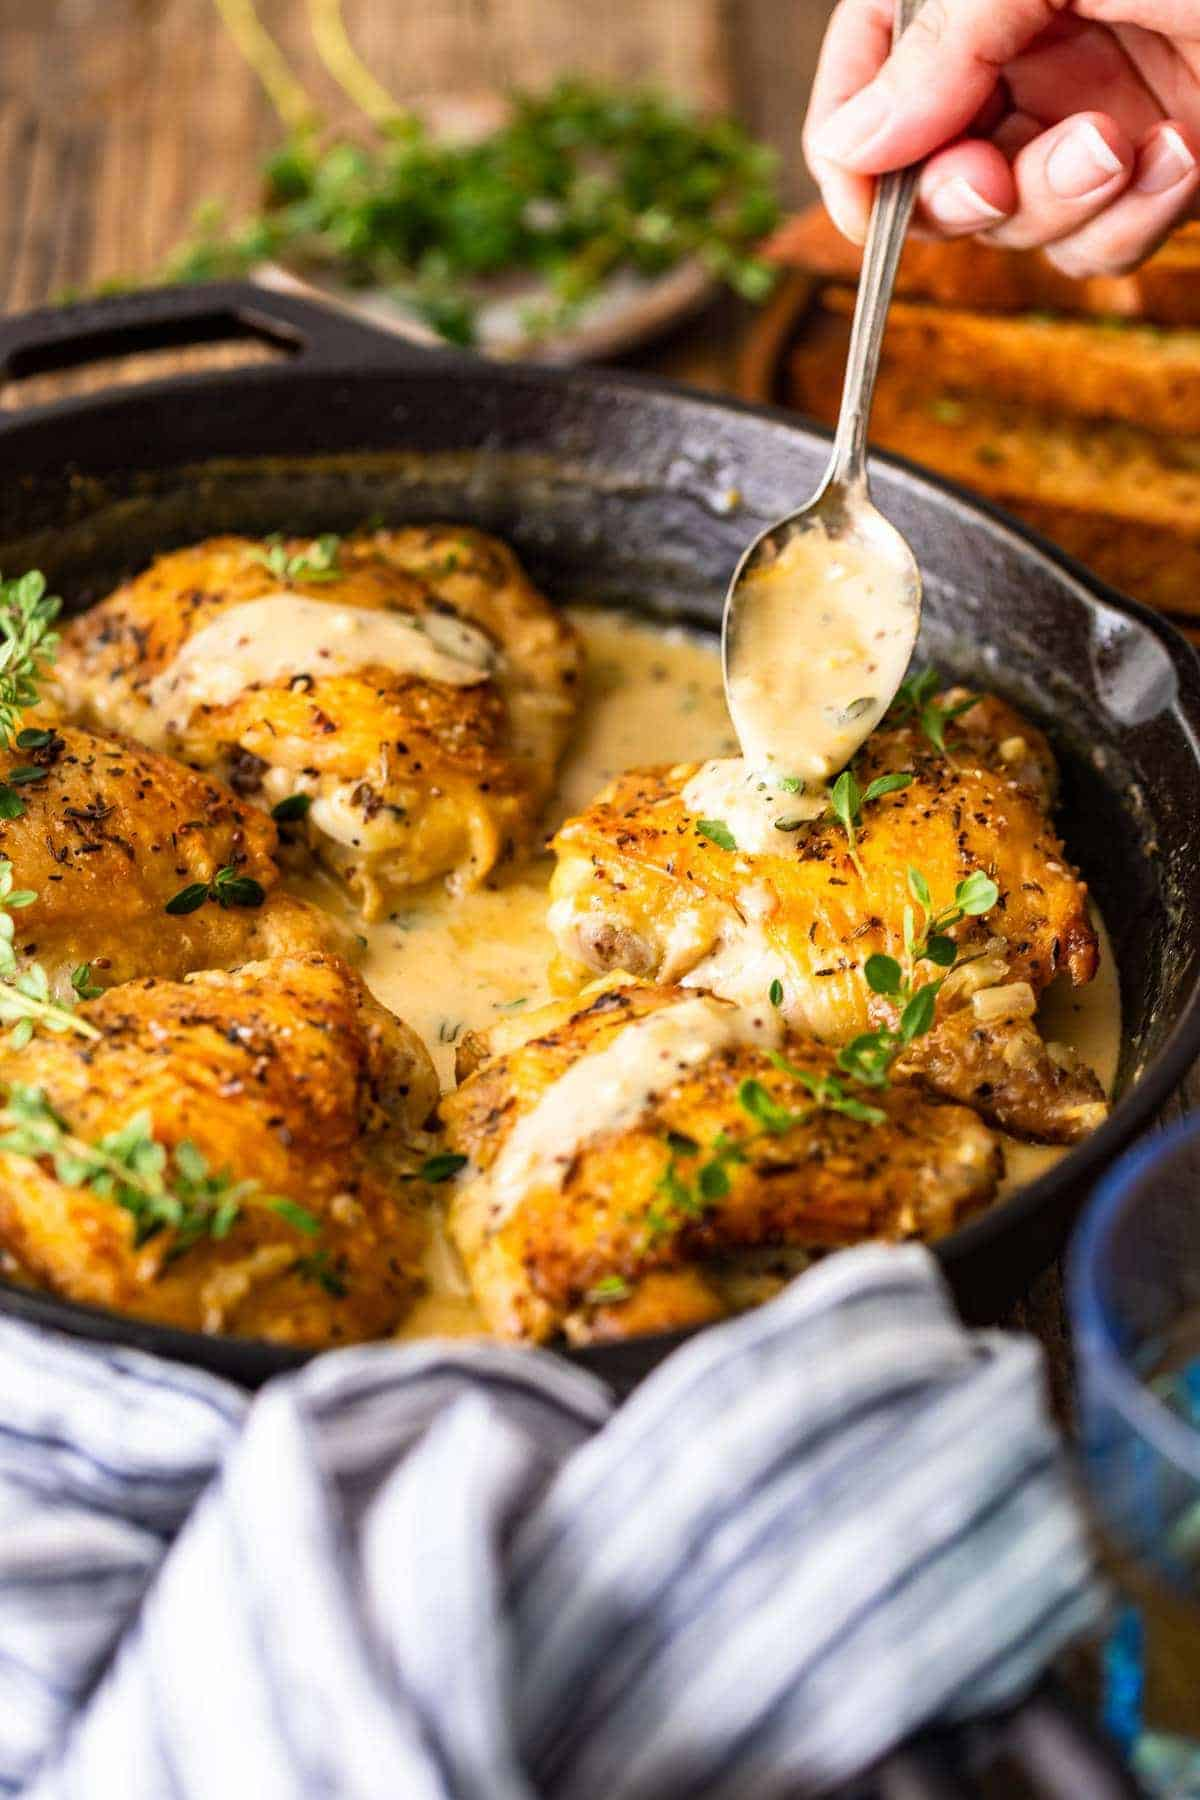 Creamy Dijon Chicken Drizzled in White Wine Sauce